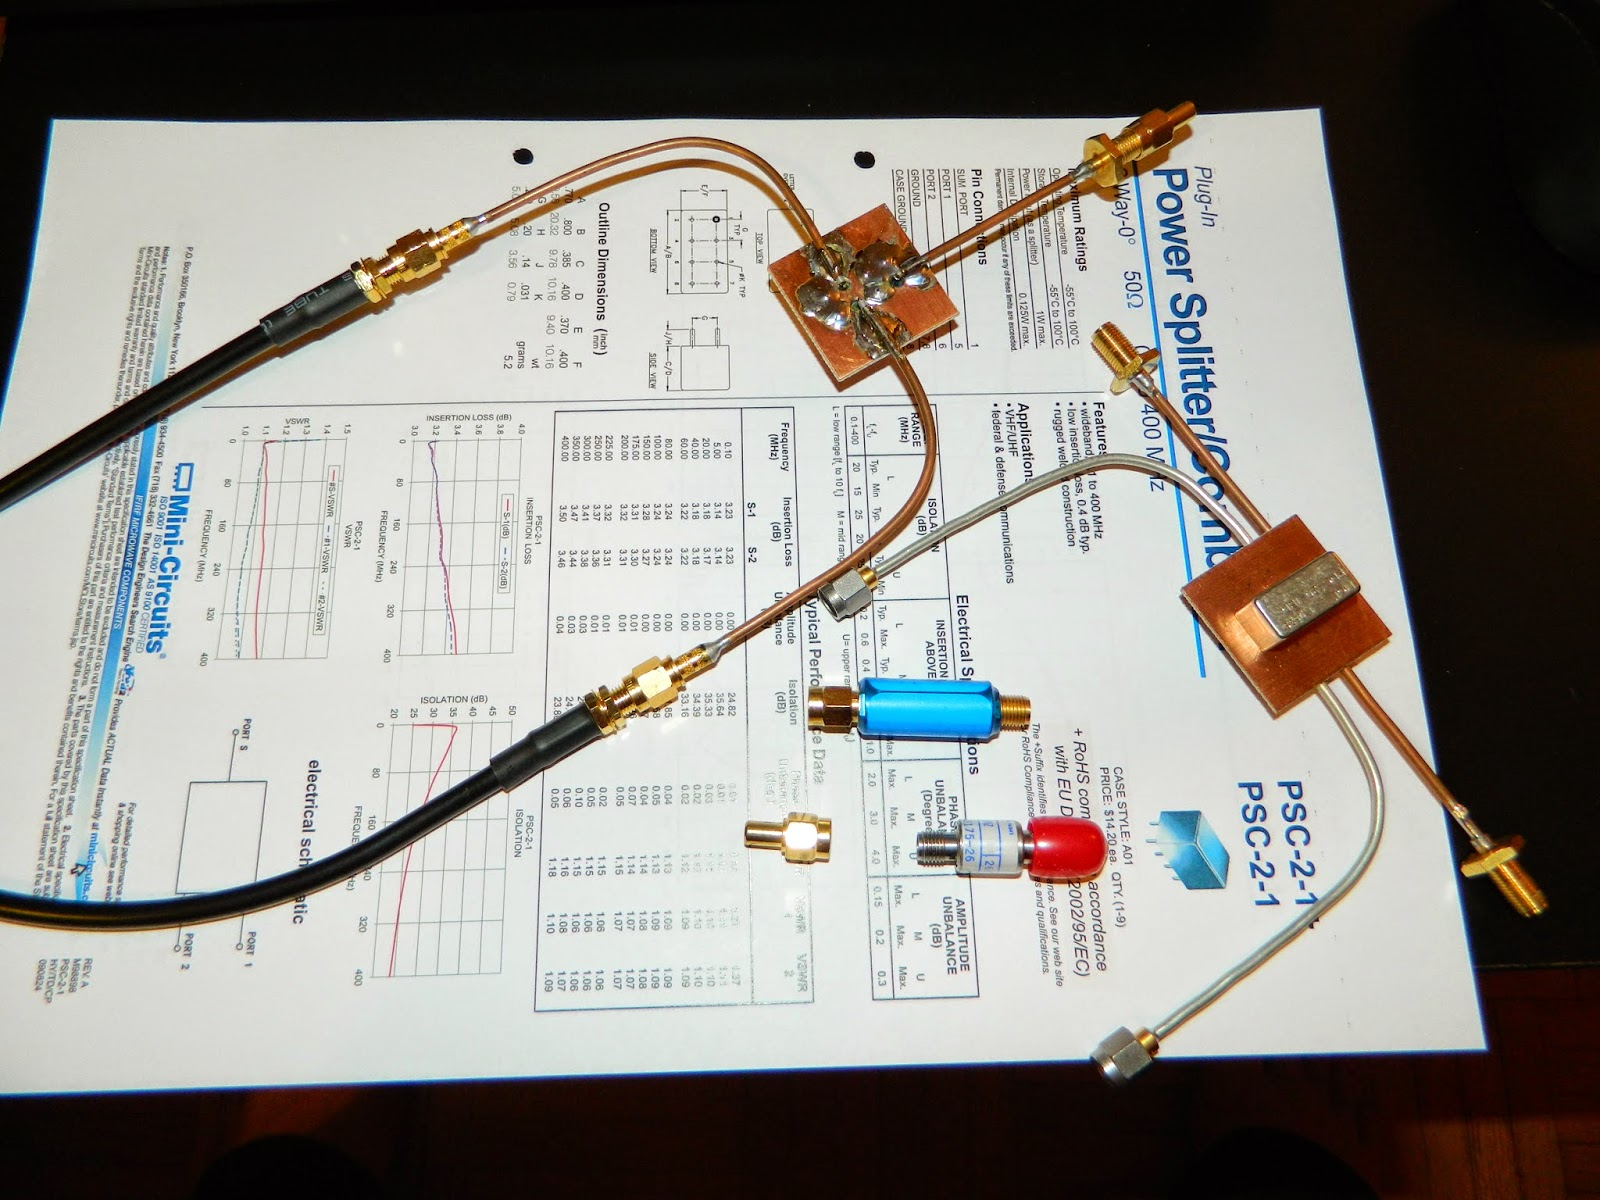 My Home Rf Lab Capacitor Signal Led Delay Minicircuit Electrical Engineering Picture Below Shows The Coupler During Its Initial Testing Nwt Output Is Connected To Input Port Of On Are 2x 20db Attenuators